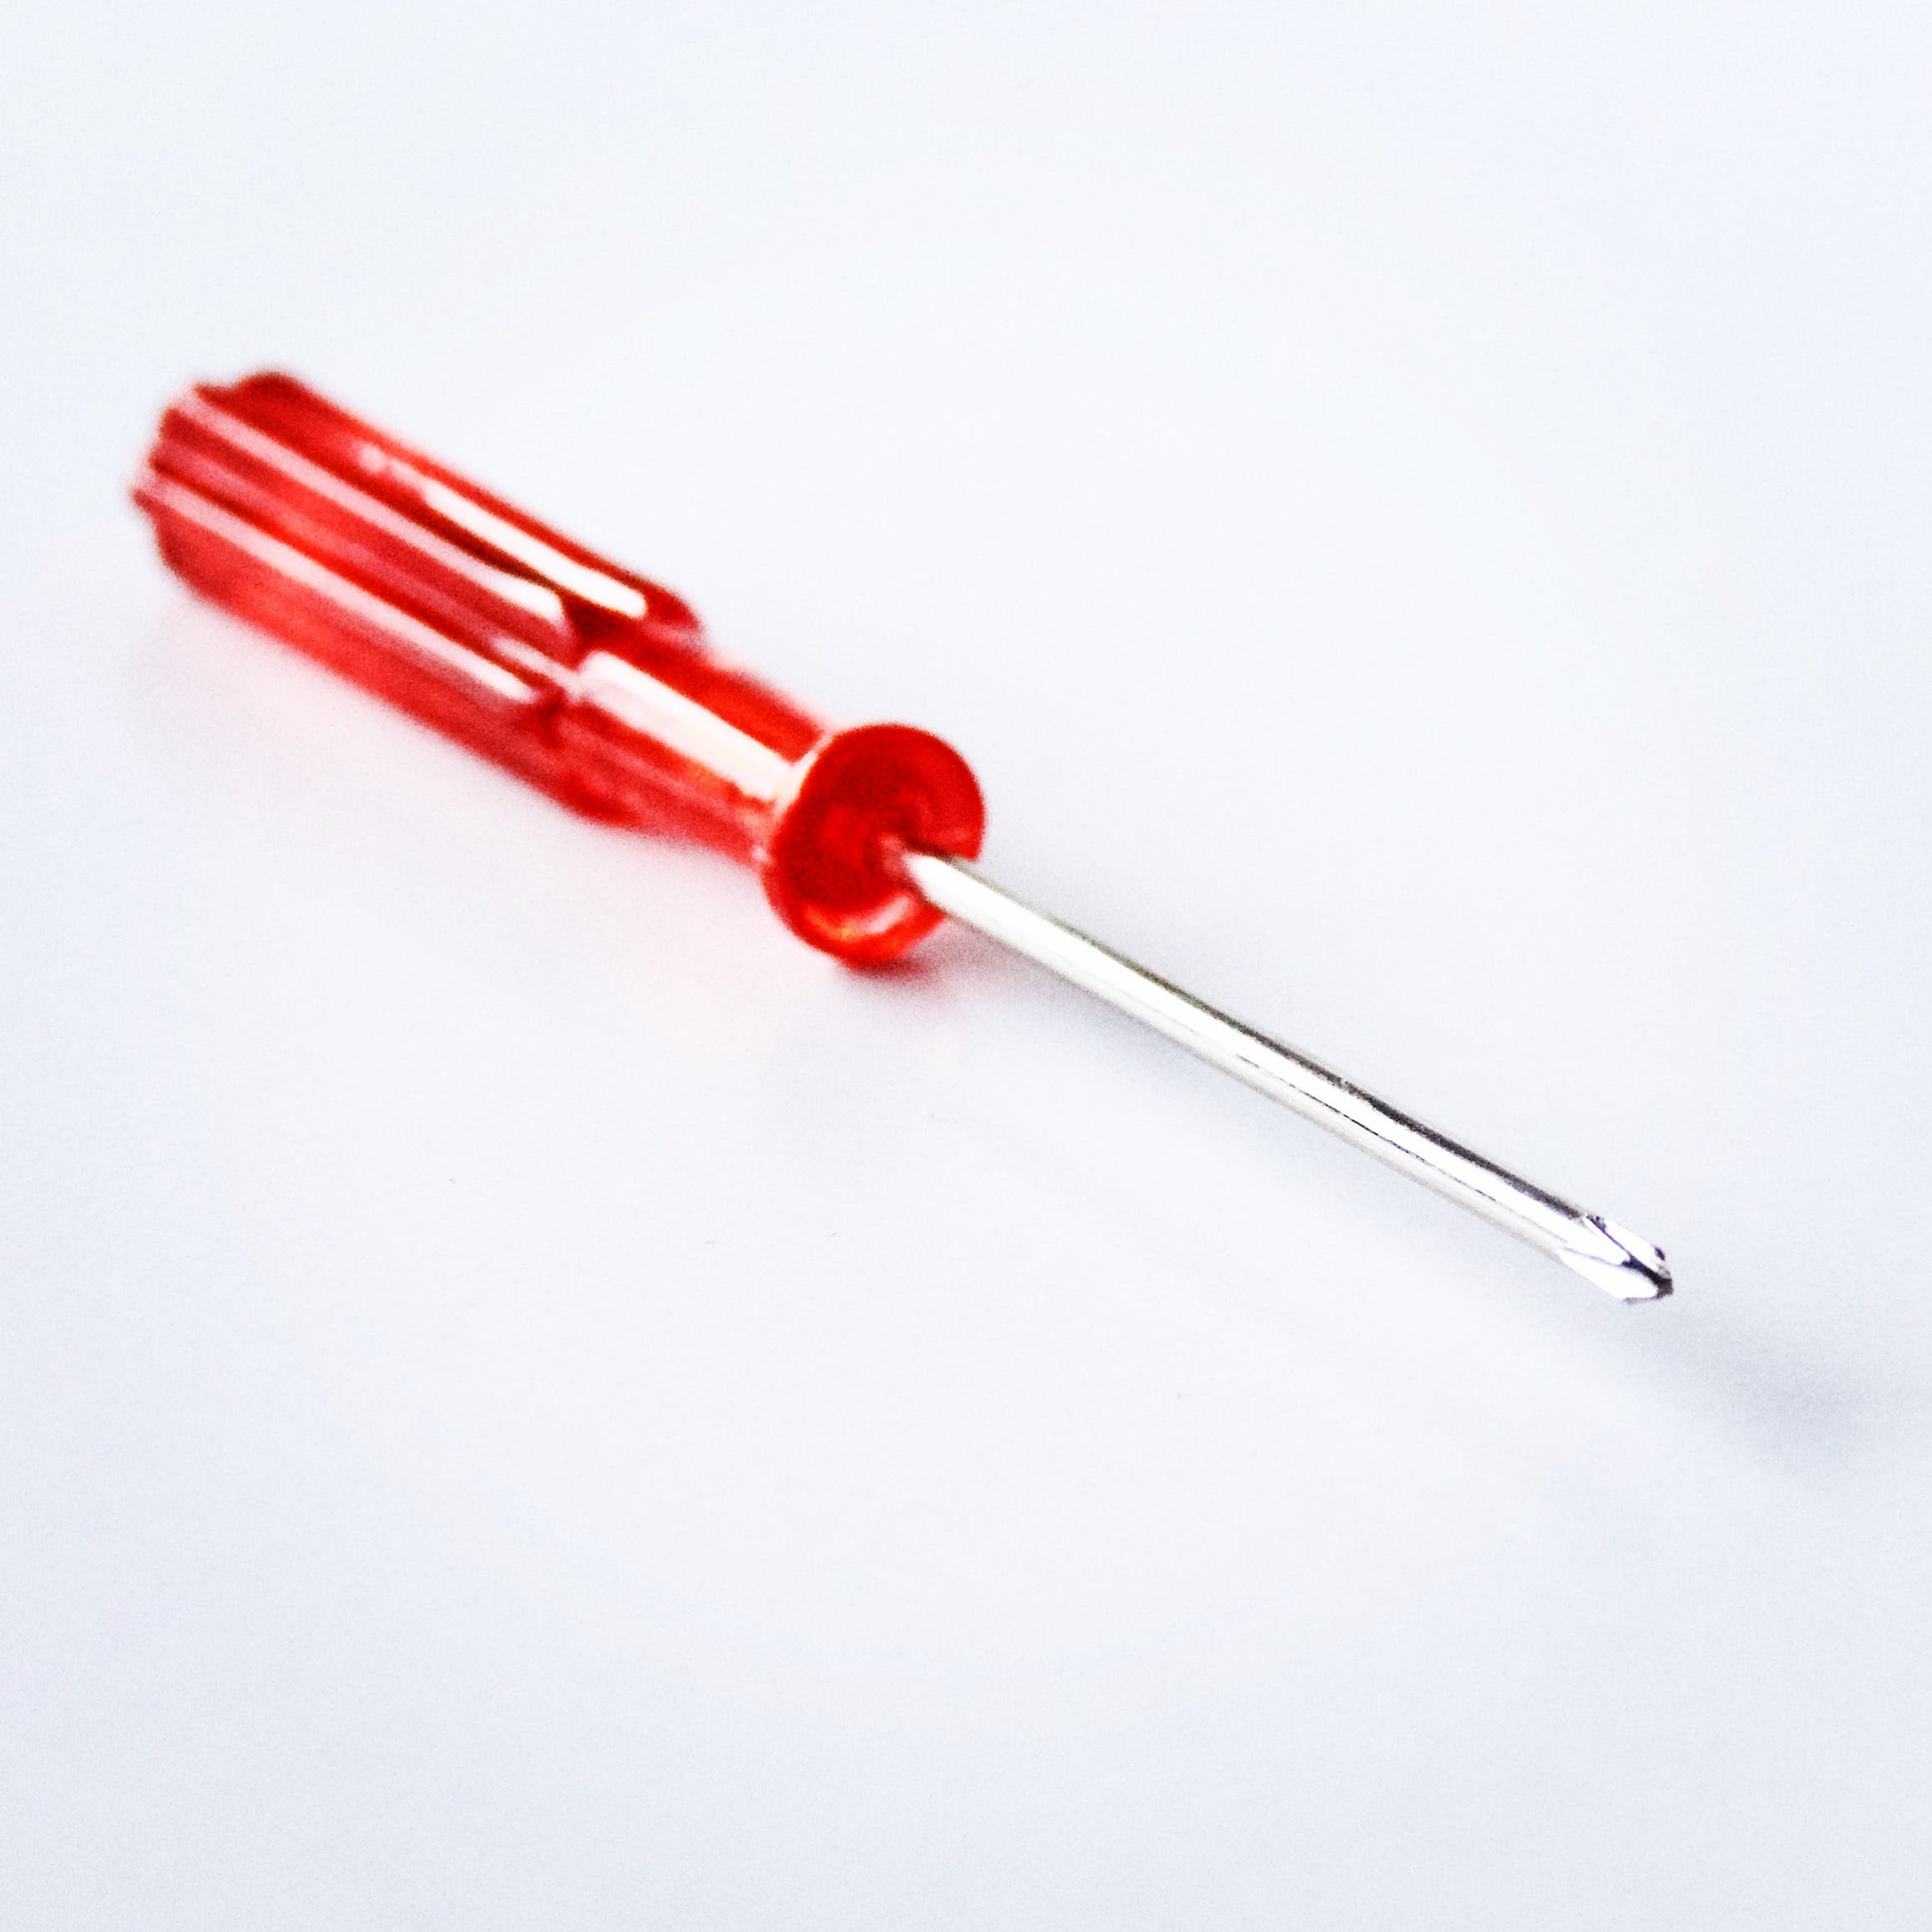 Close-Up Photography of Red Screwdriver